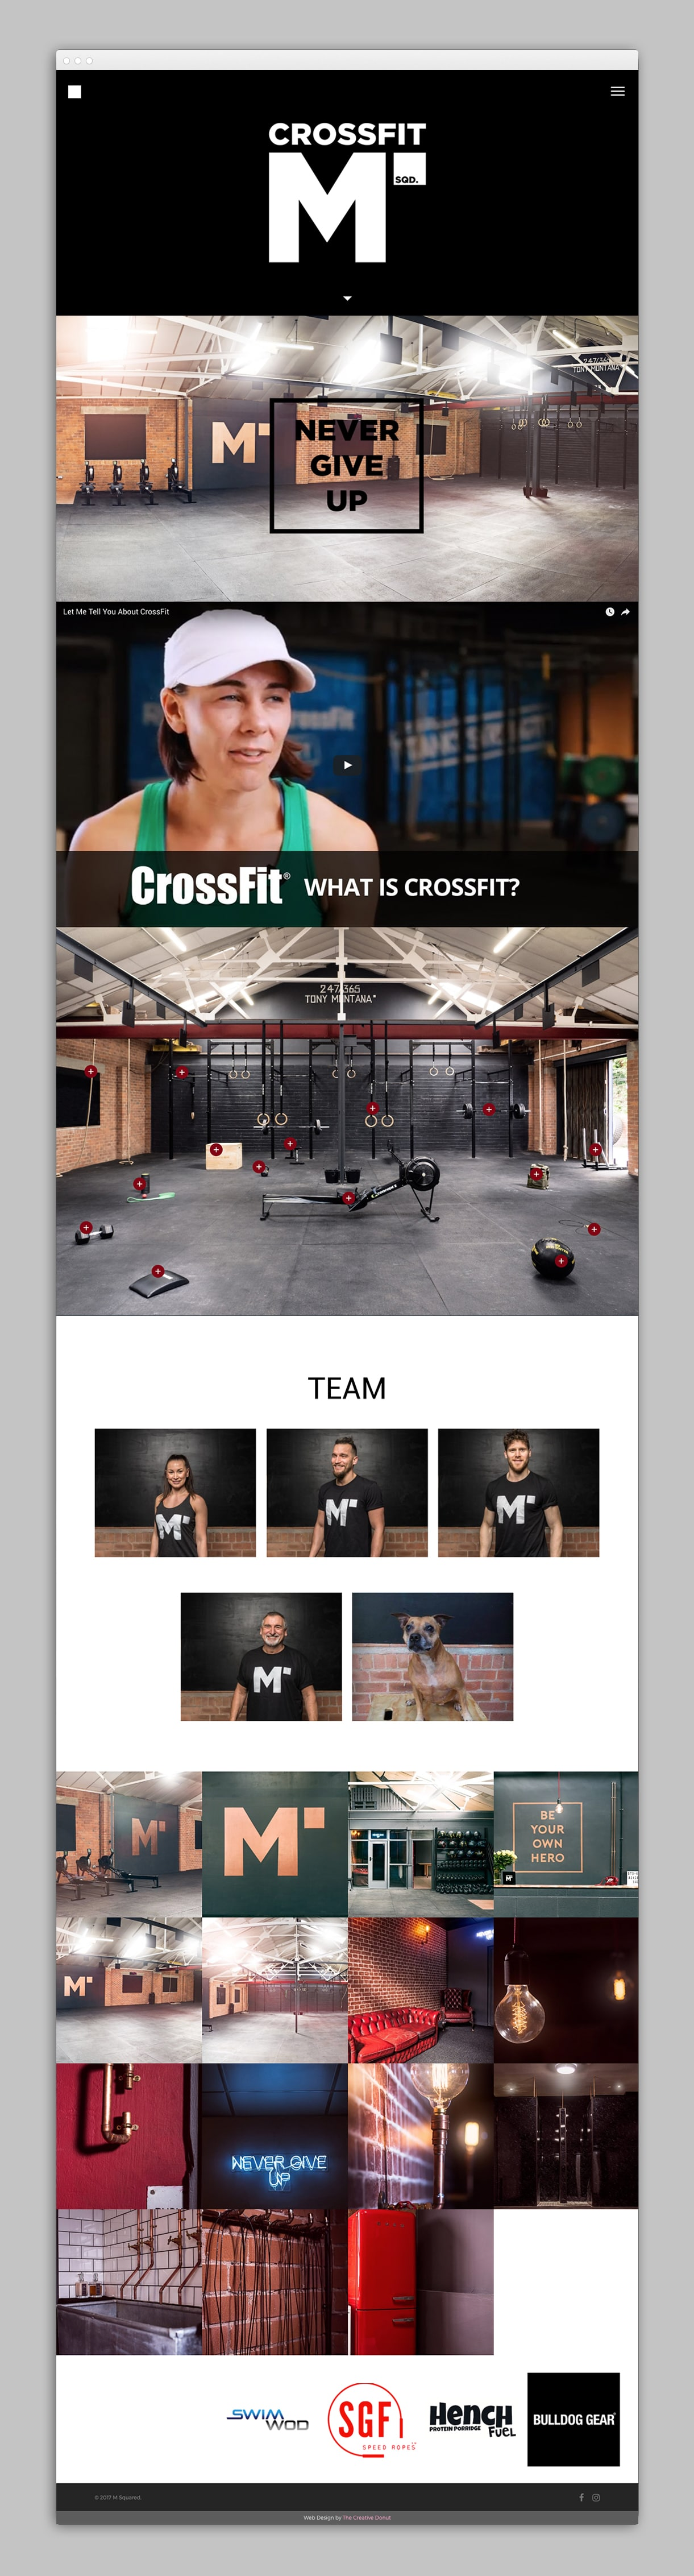 creative donut best web design manchester crossfit m squared fitness competition